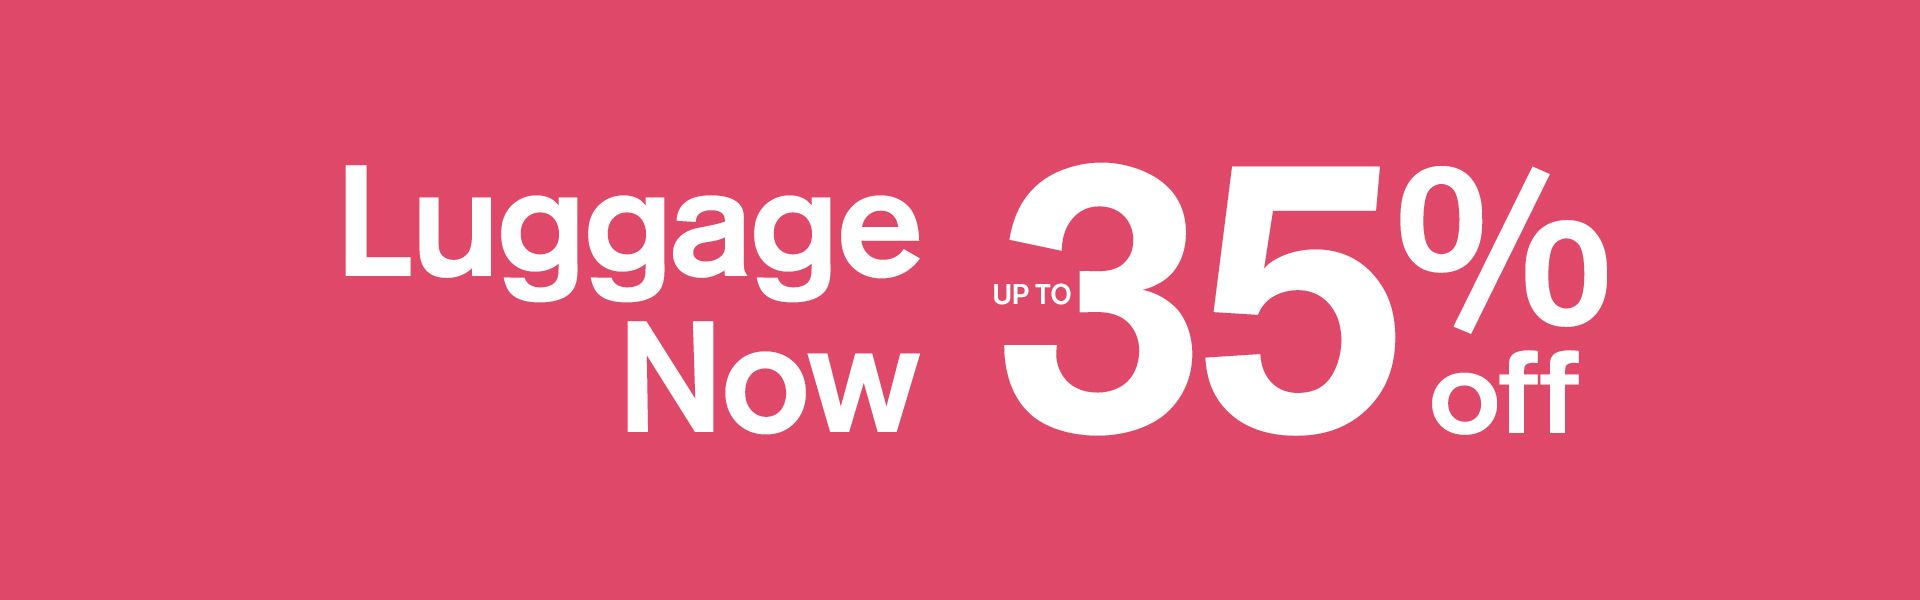 Luggage now up to 35% off